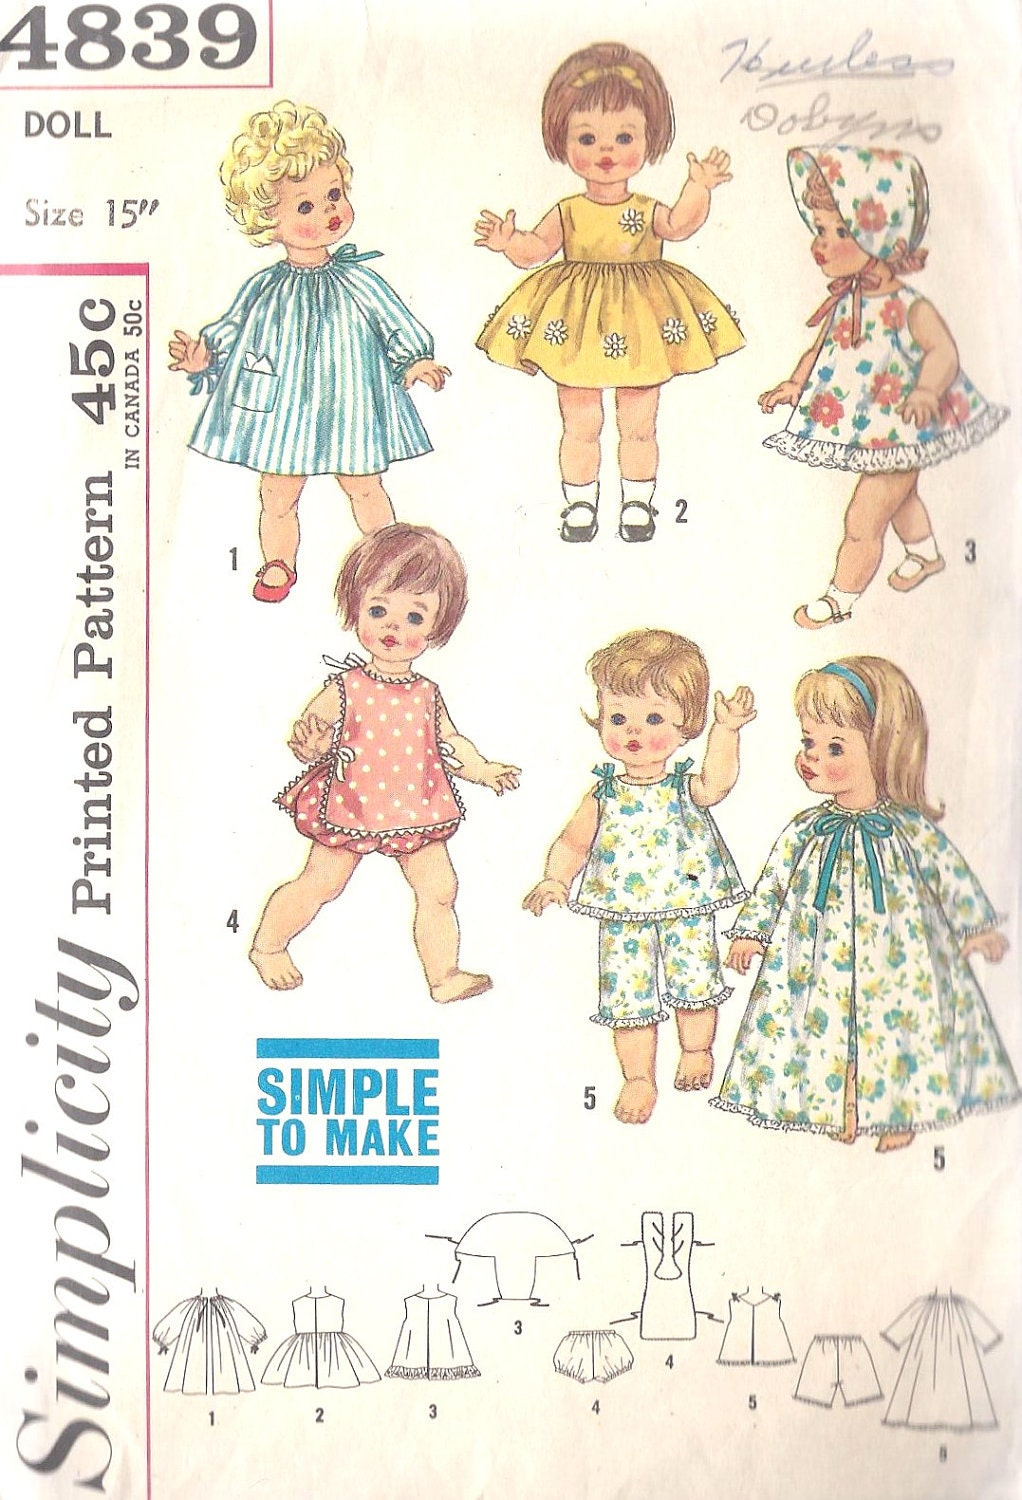 1960s15 inch Doll Tiny Chatty Baby Clothing Wardrobe Vintage Sewing Pattern Simplicity 4839